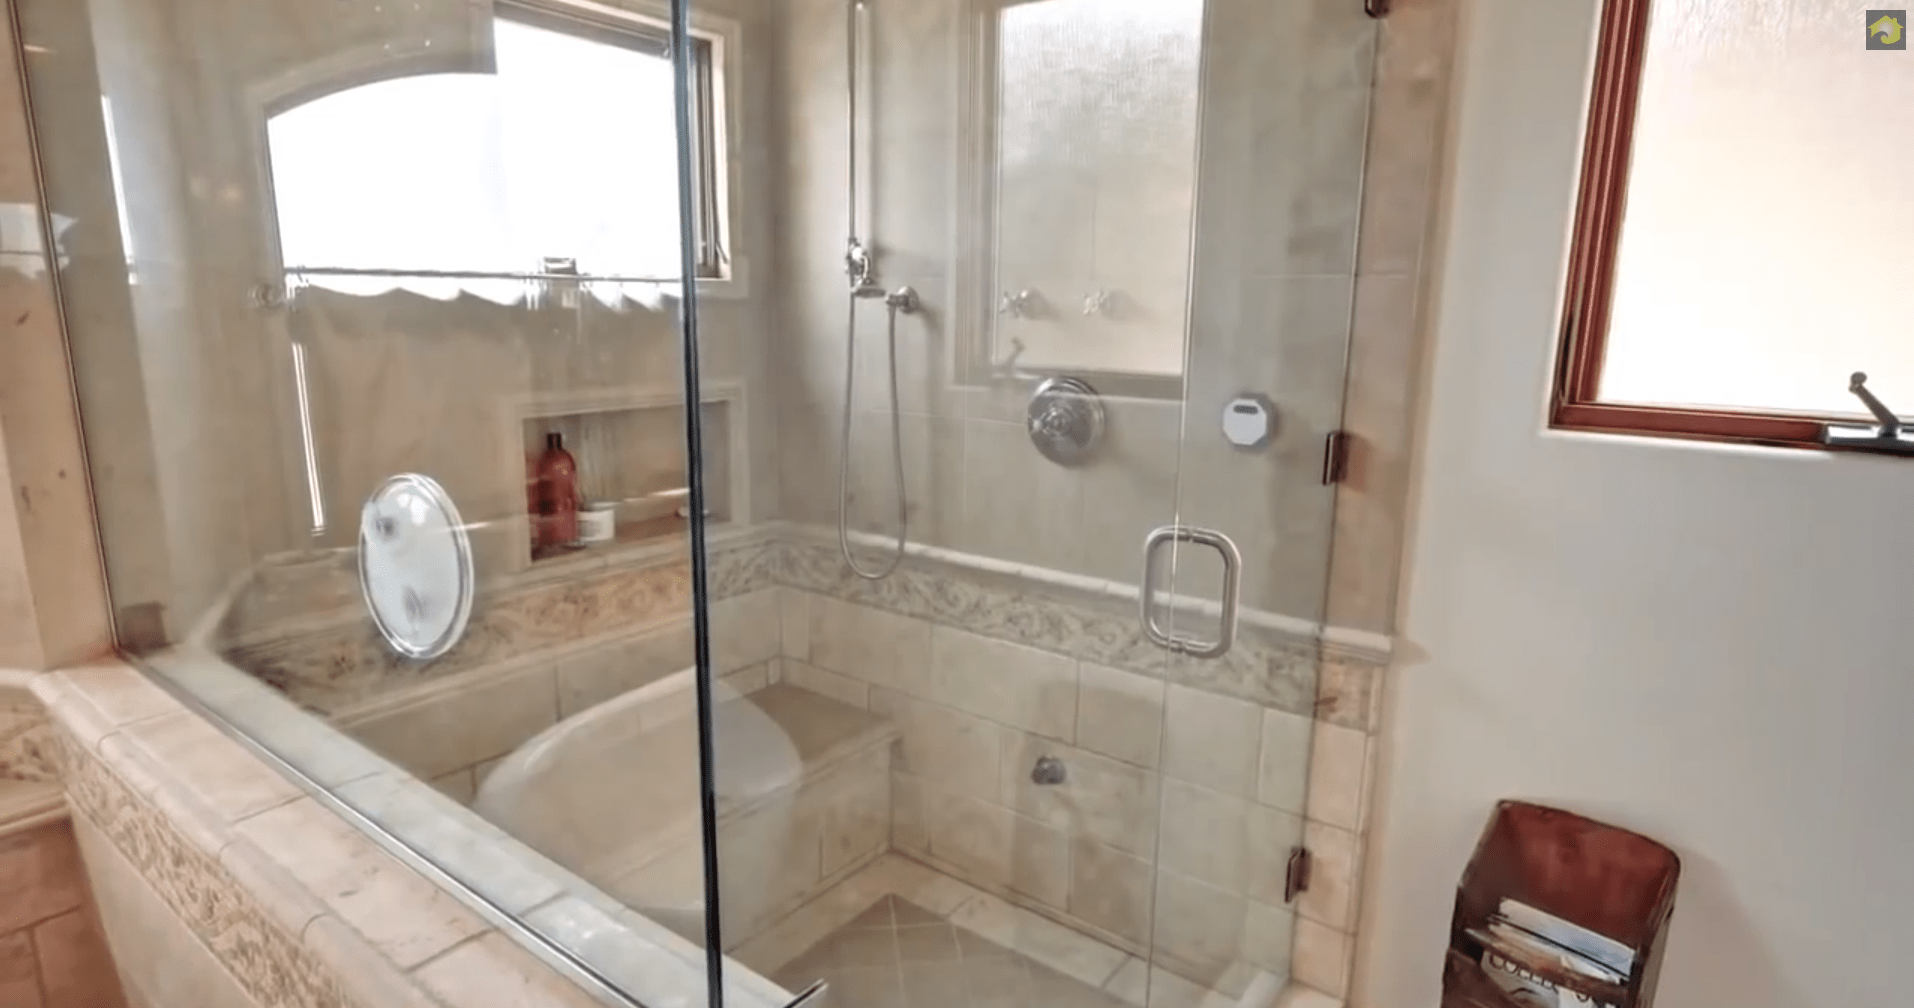 It features a walk-in steam shower.